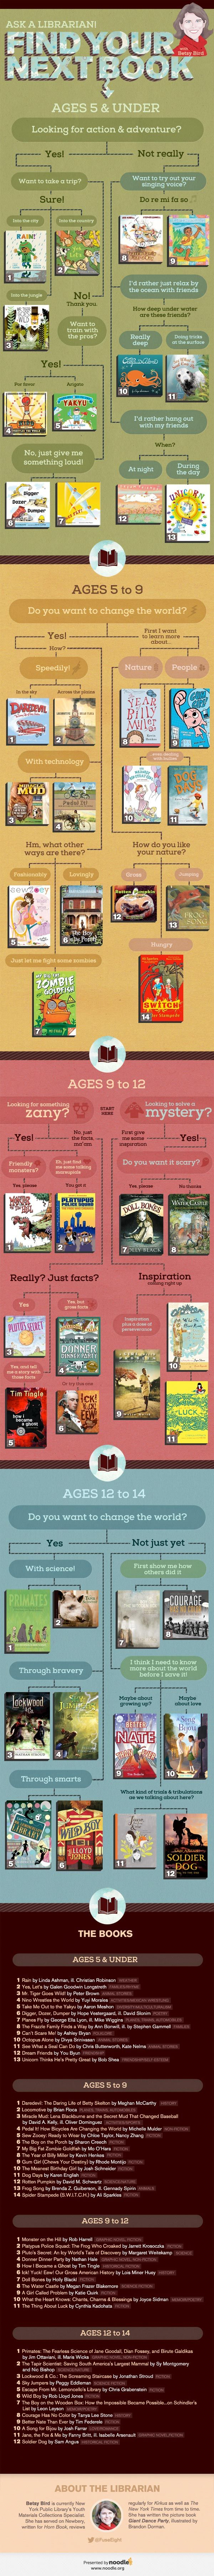 Cute infographic on choosing from some of the top children's books of 2013